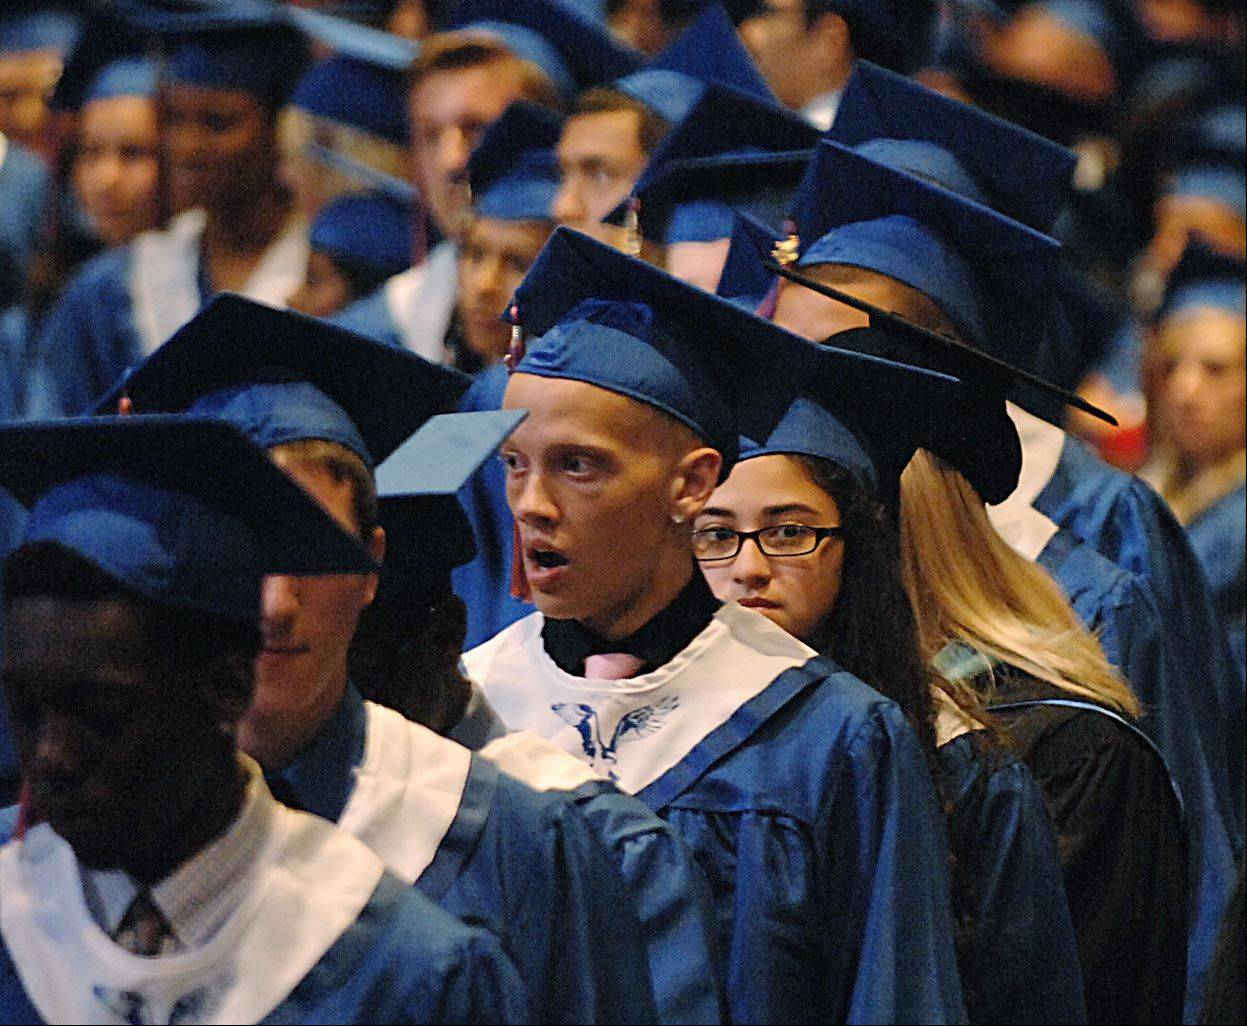 Images from the Hoffman Estates High School graduation on Thursday, May 31st, at Willow Creek Church in Barrington.